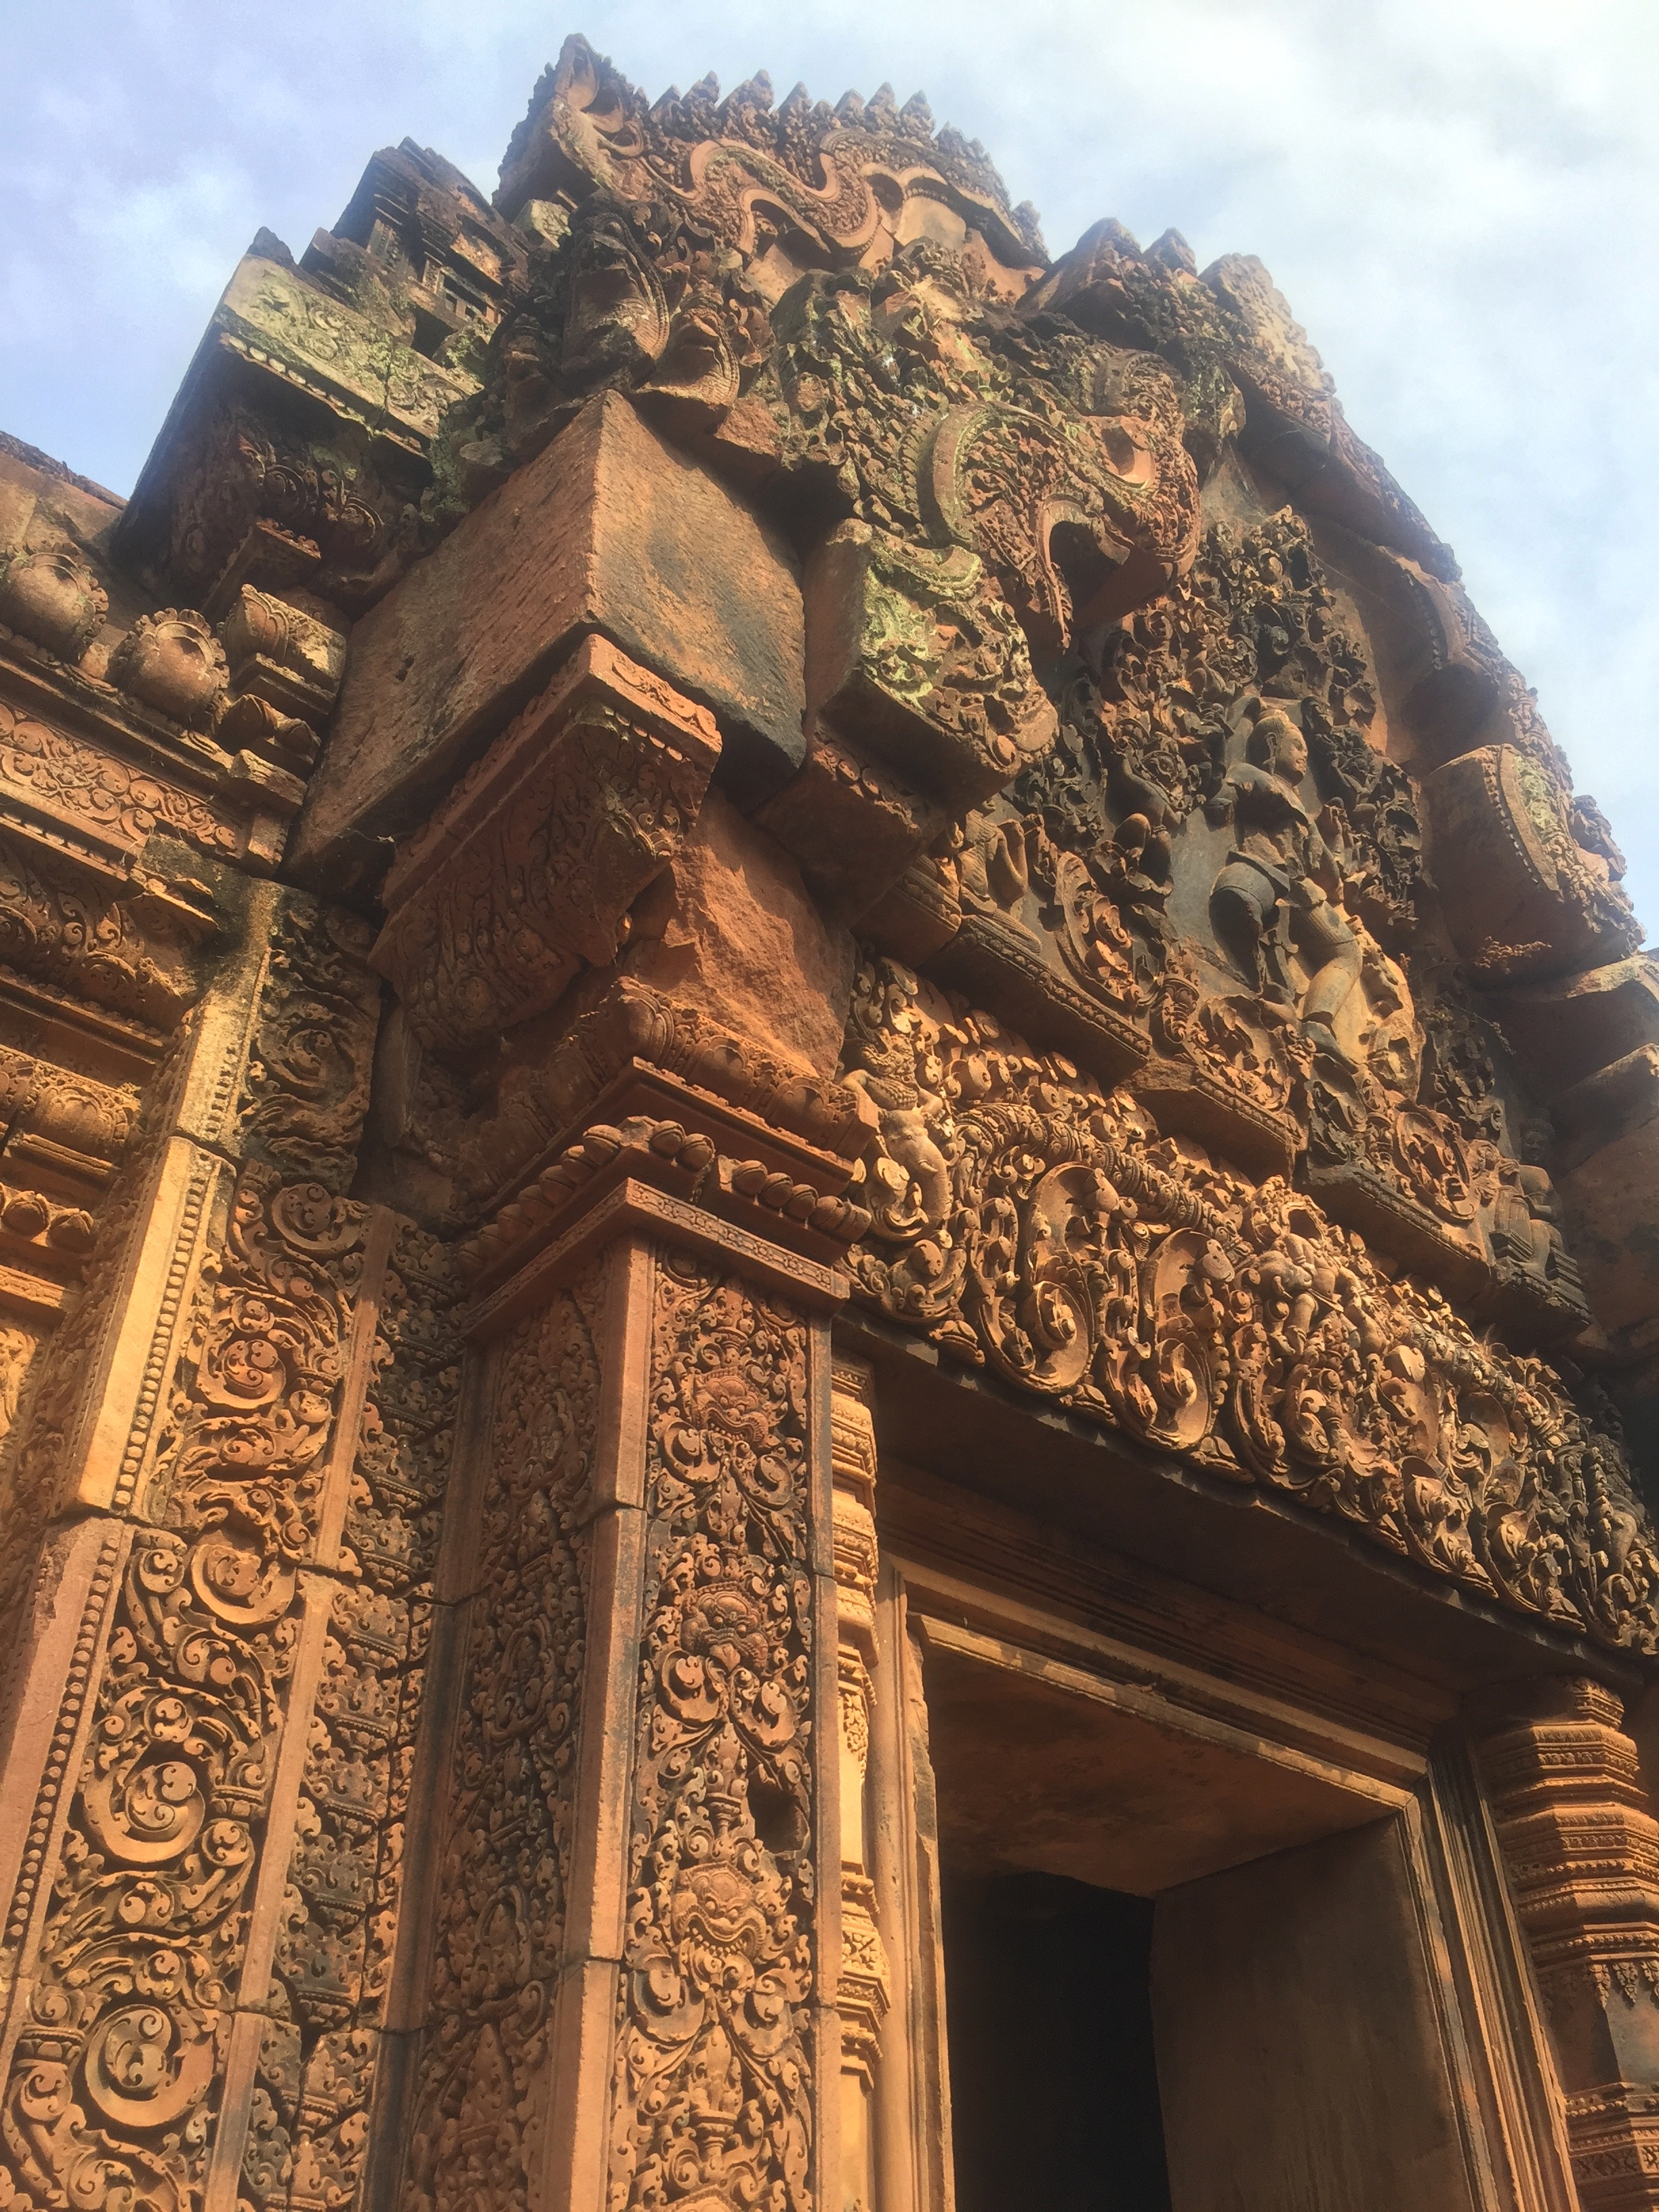 Banteay Srei Temple - 10th Century AD Hindu temple dedicated to the the deity Shiva. The carvings at this site are incredibly well preserved.